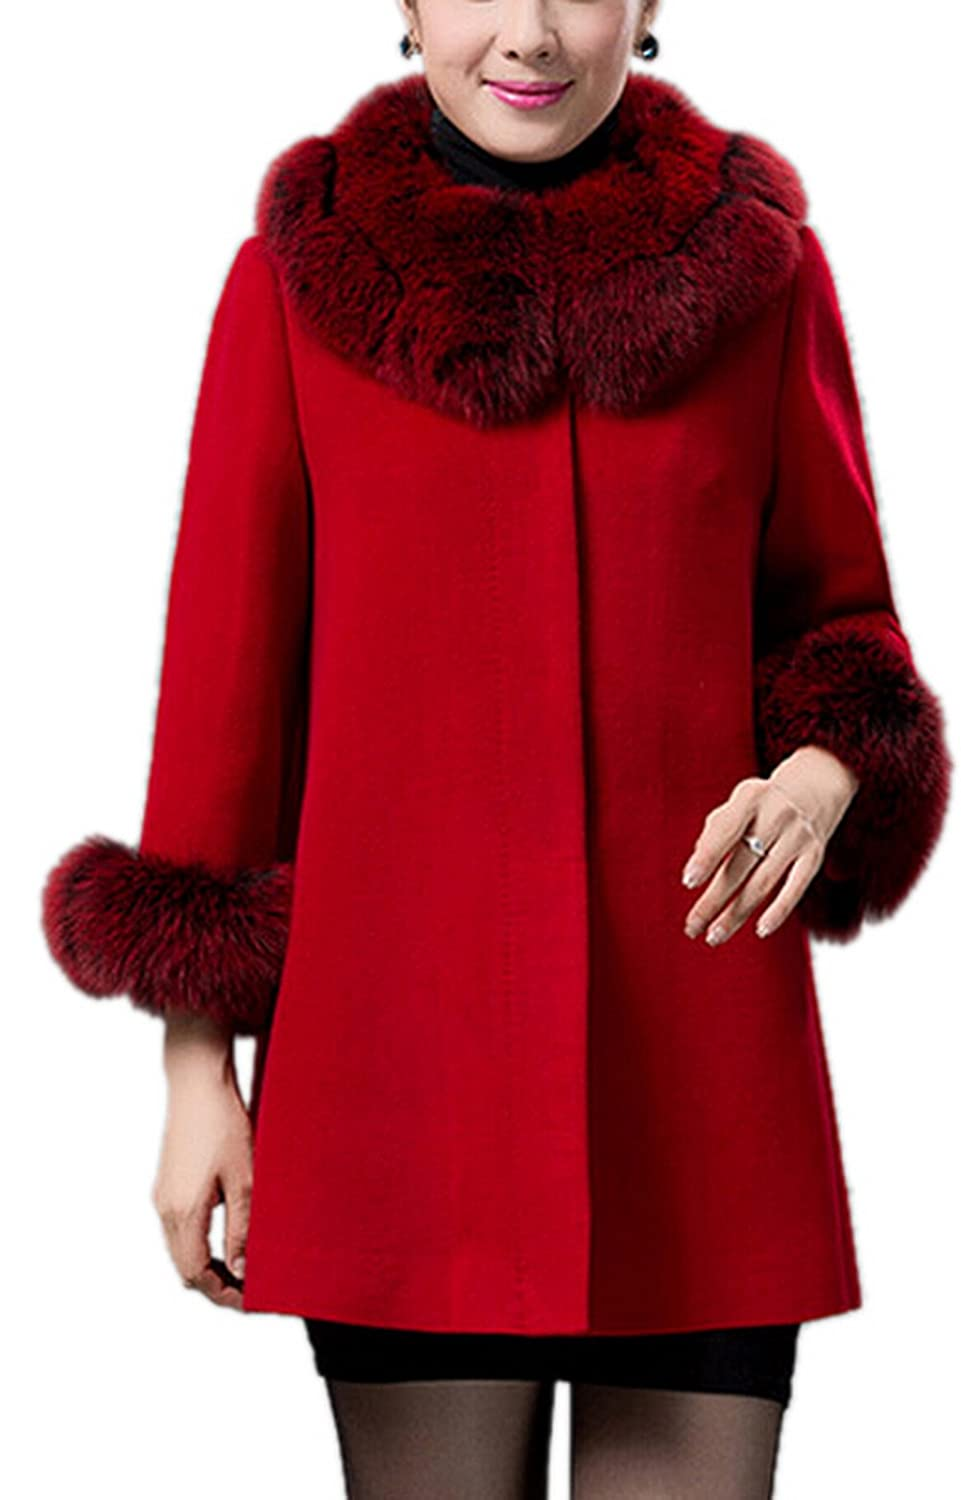 Women's Winter Wool-Blend Outerwear Coat with Faux-Fur Collar Navy/Red